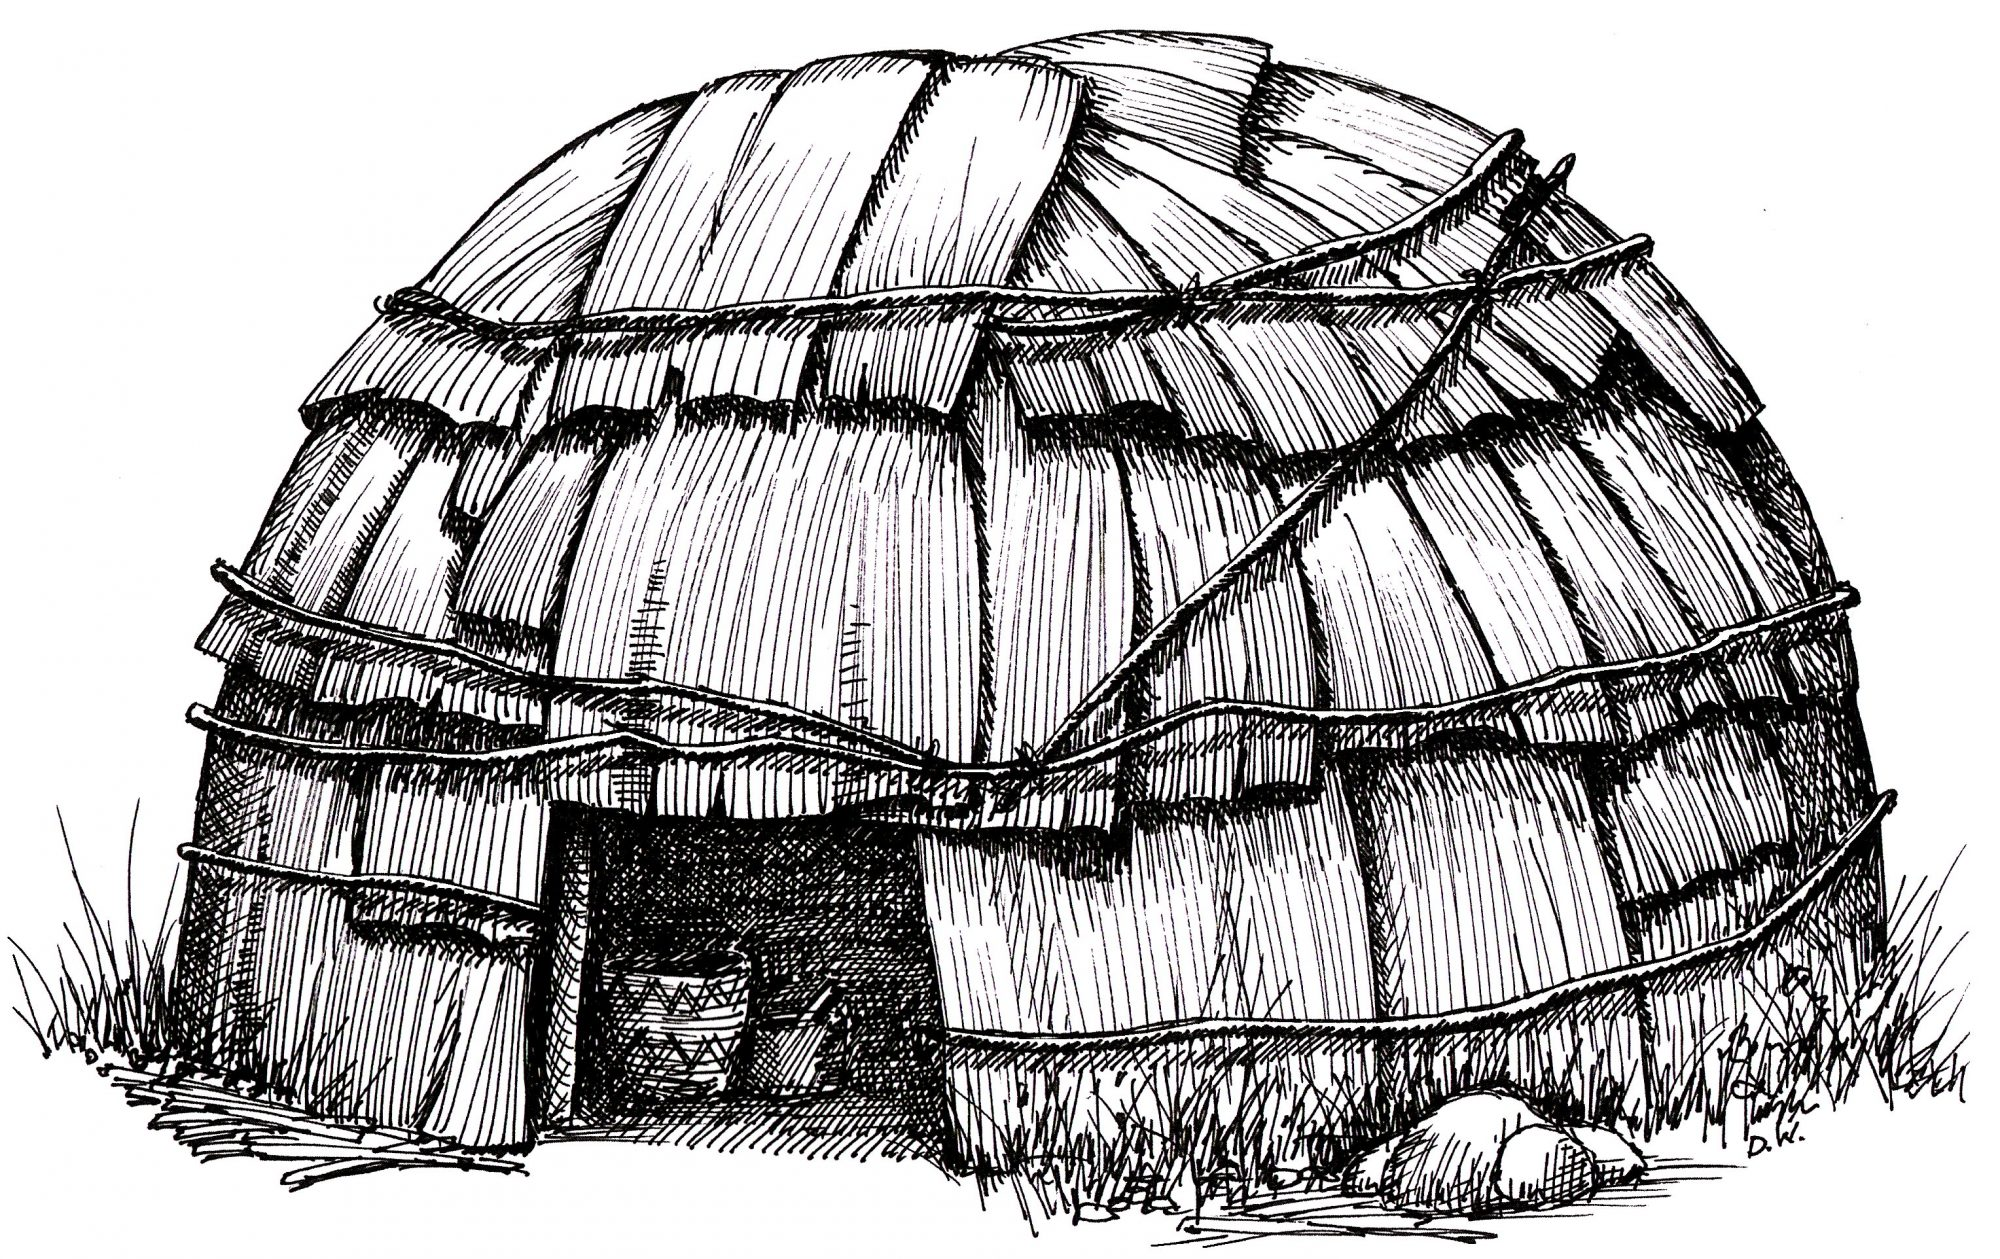 Ink sketch of a Wetu, a bark-covered dome hut used by the Wampanoags.